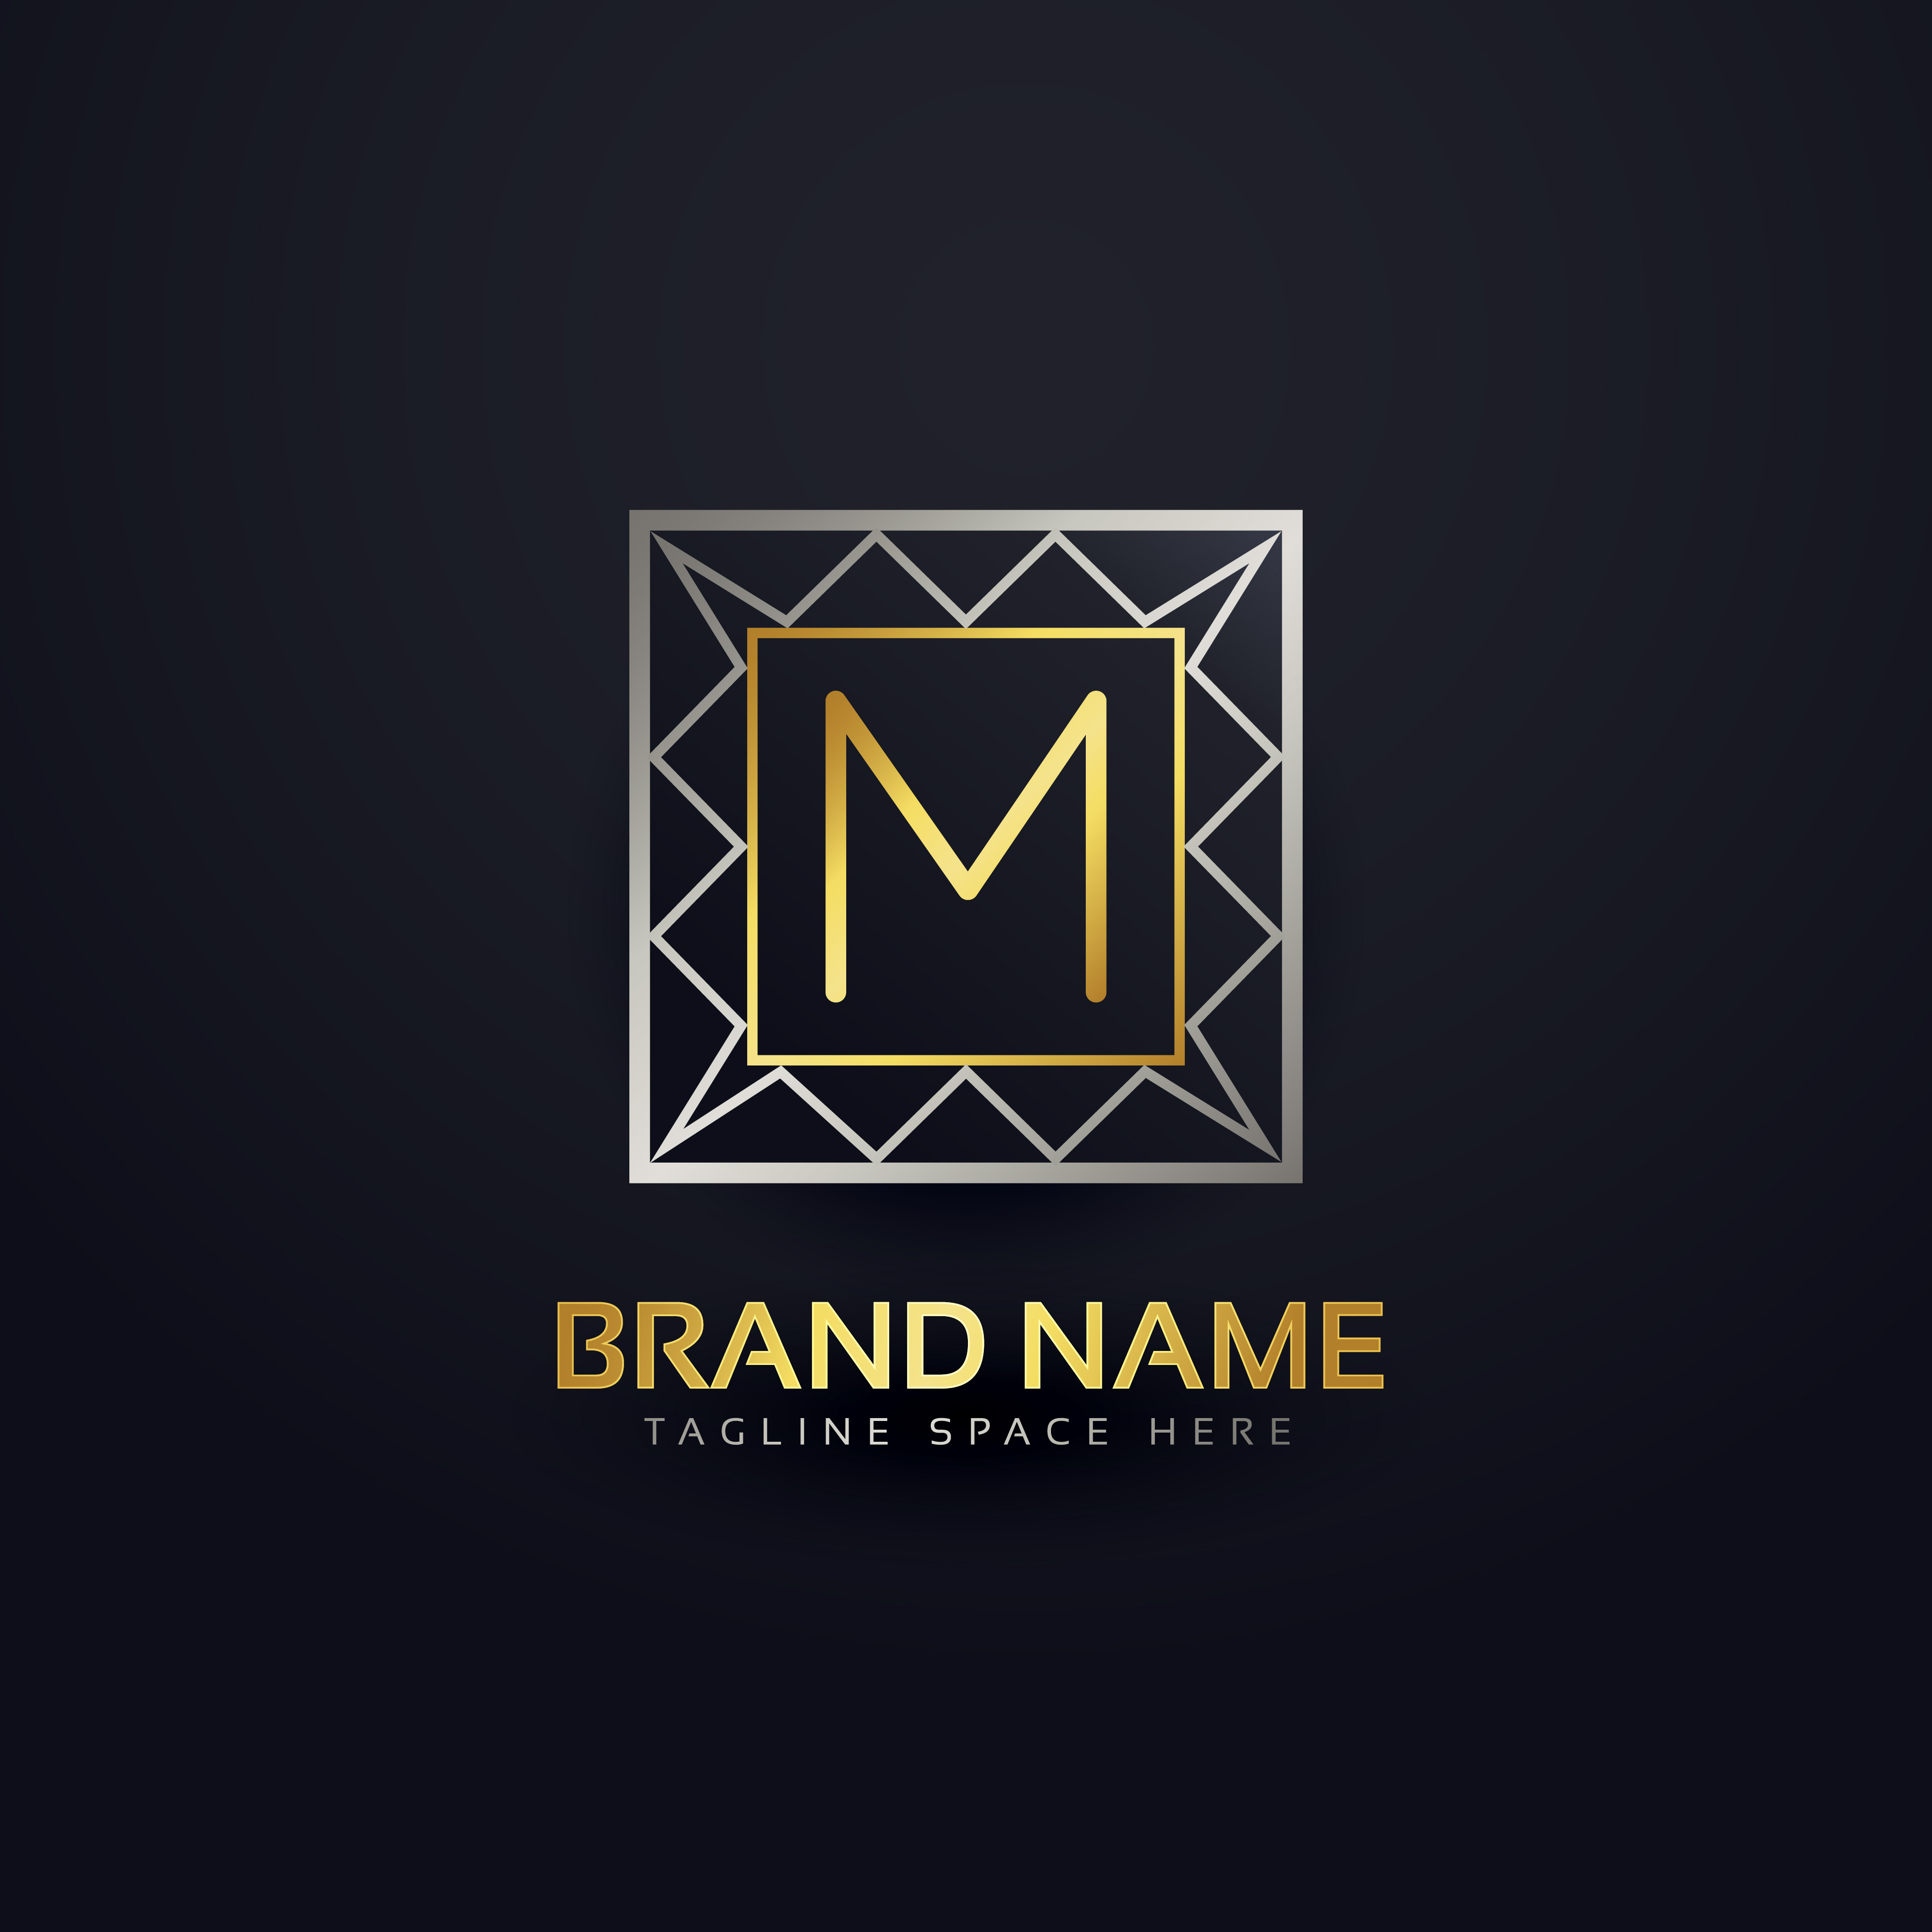 Set Of Monochrome Labels With Luxury Design: Premium Letter M Logo In Geometric Shape Style